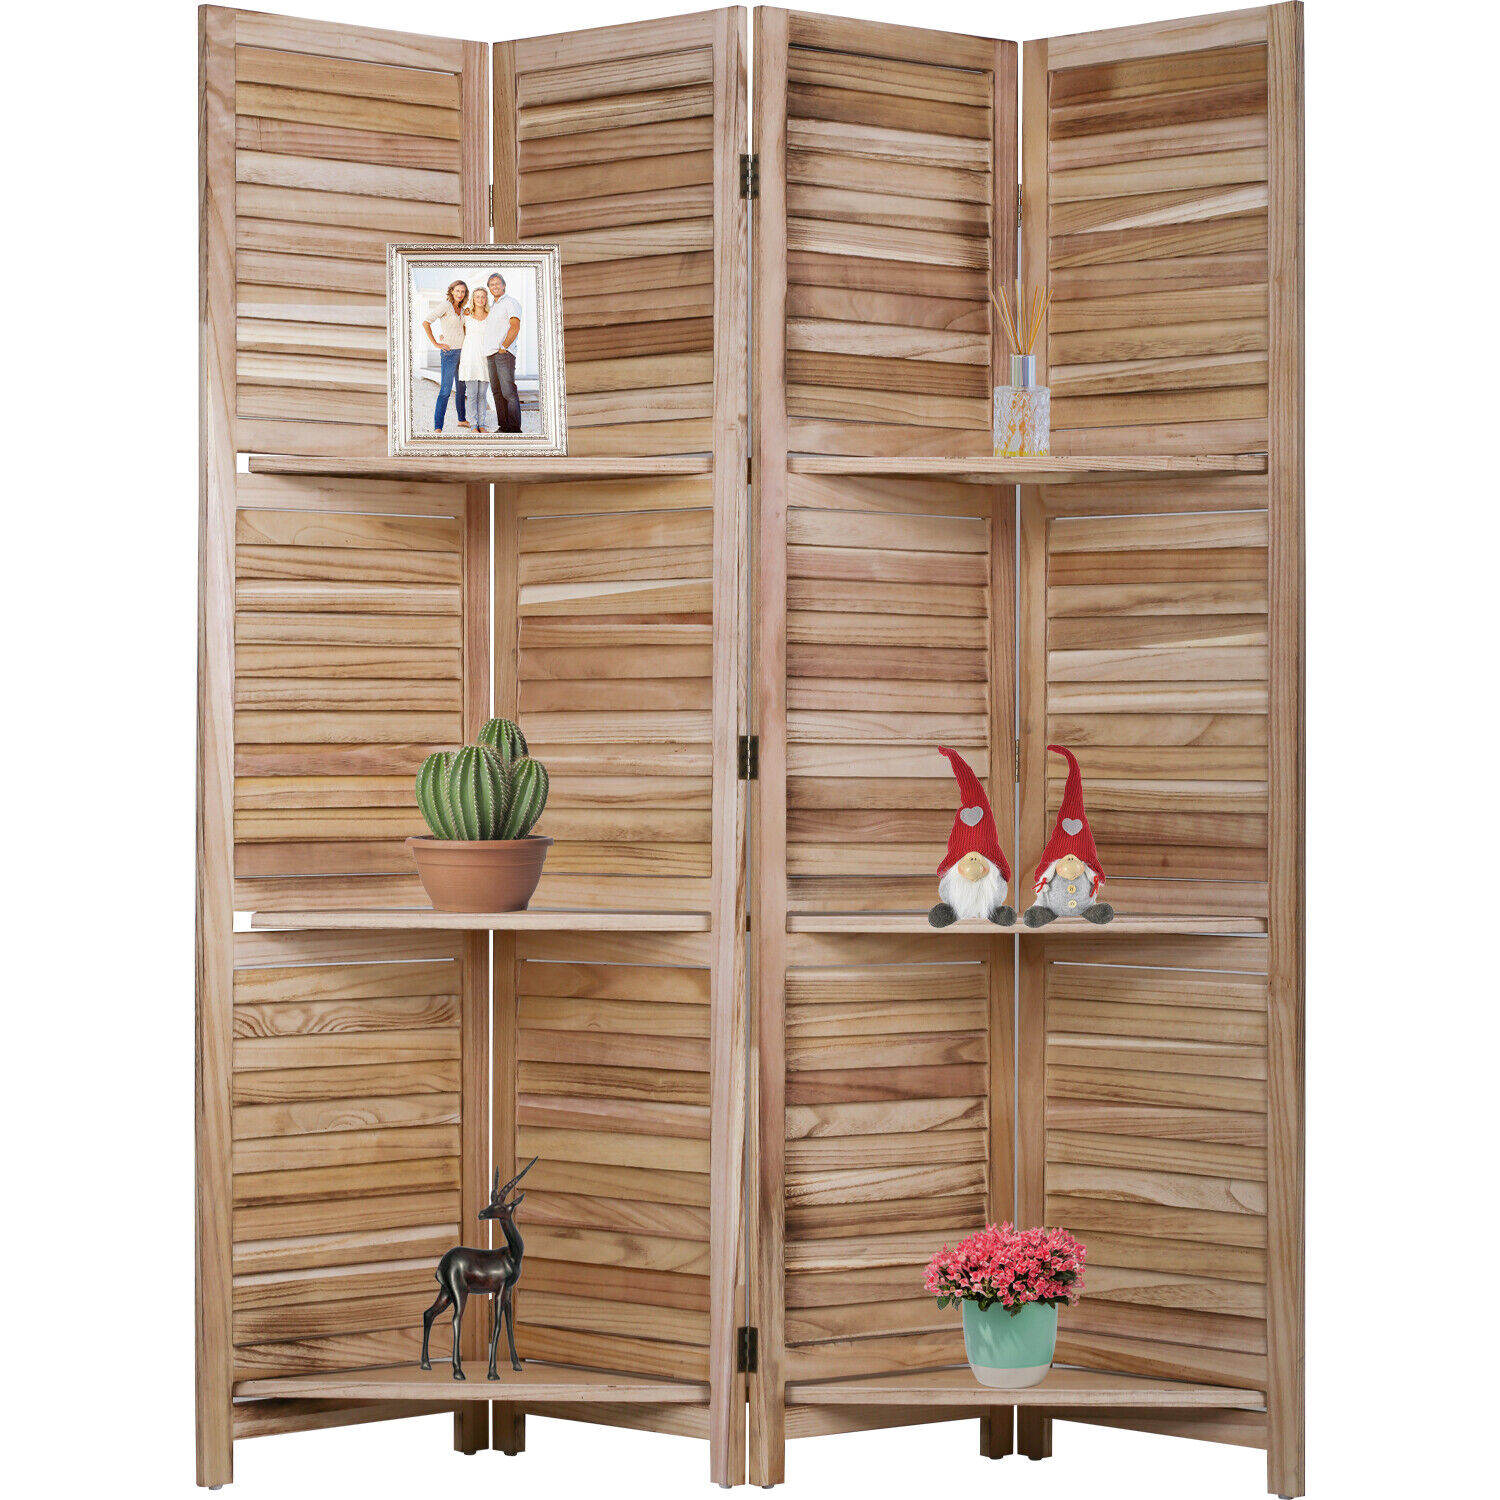 4 Panel Room Divider Folding Privacy Wooden Screen With Three Clever Shelf Furniture